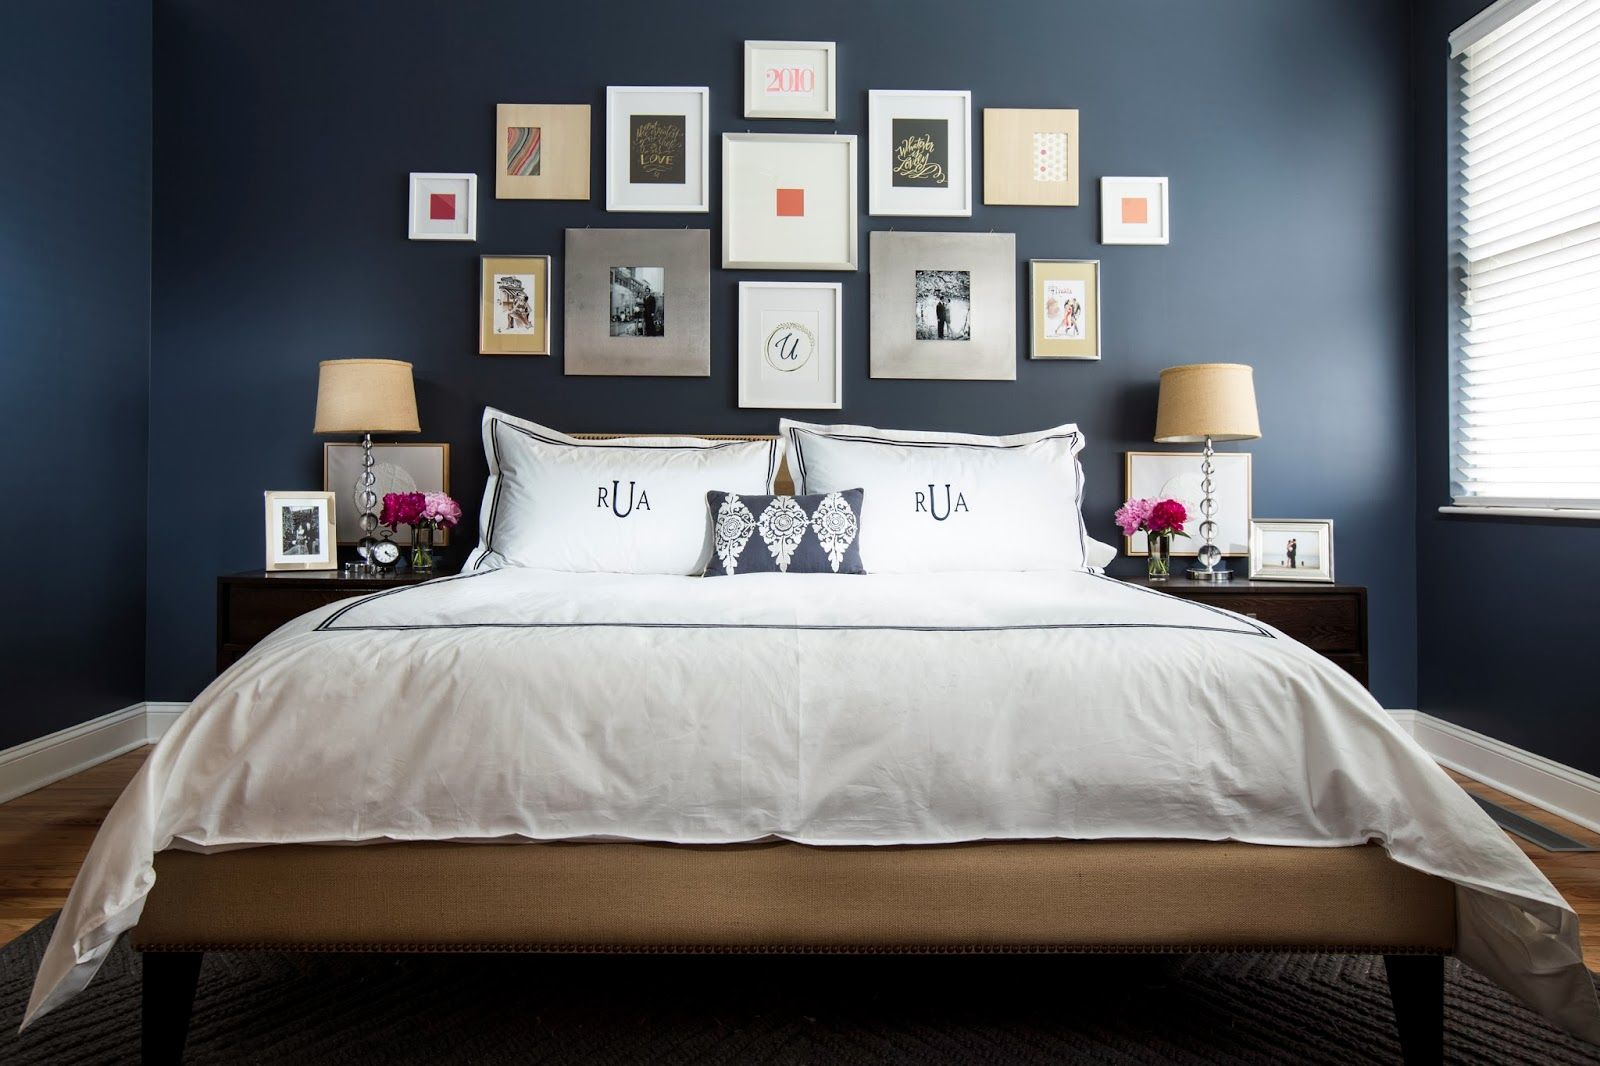 Navy & Dark Blue Bedroom Design Ideas & Pictures | Home Design Ideas ...